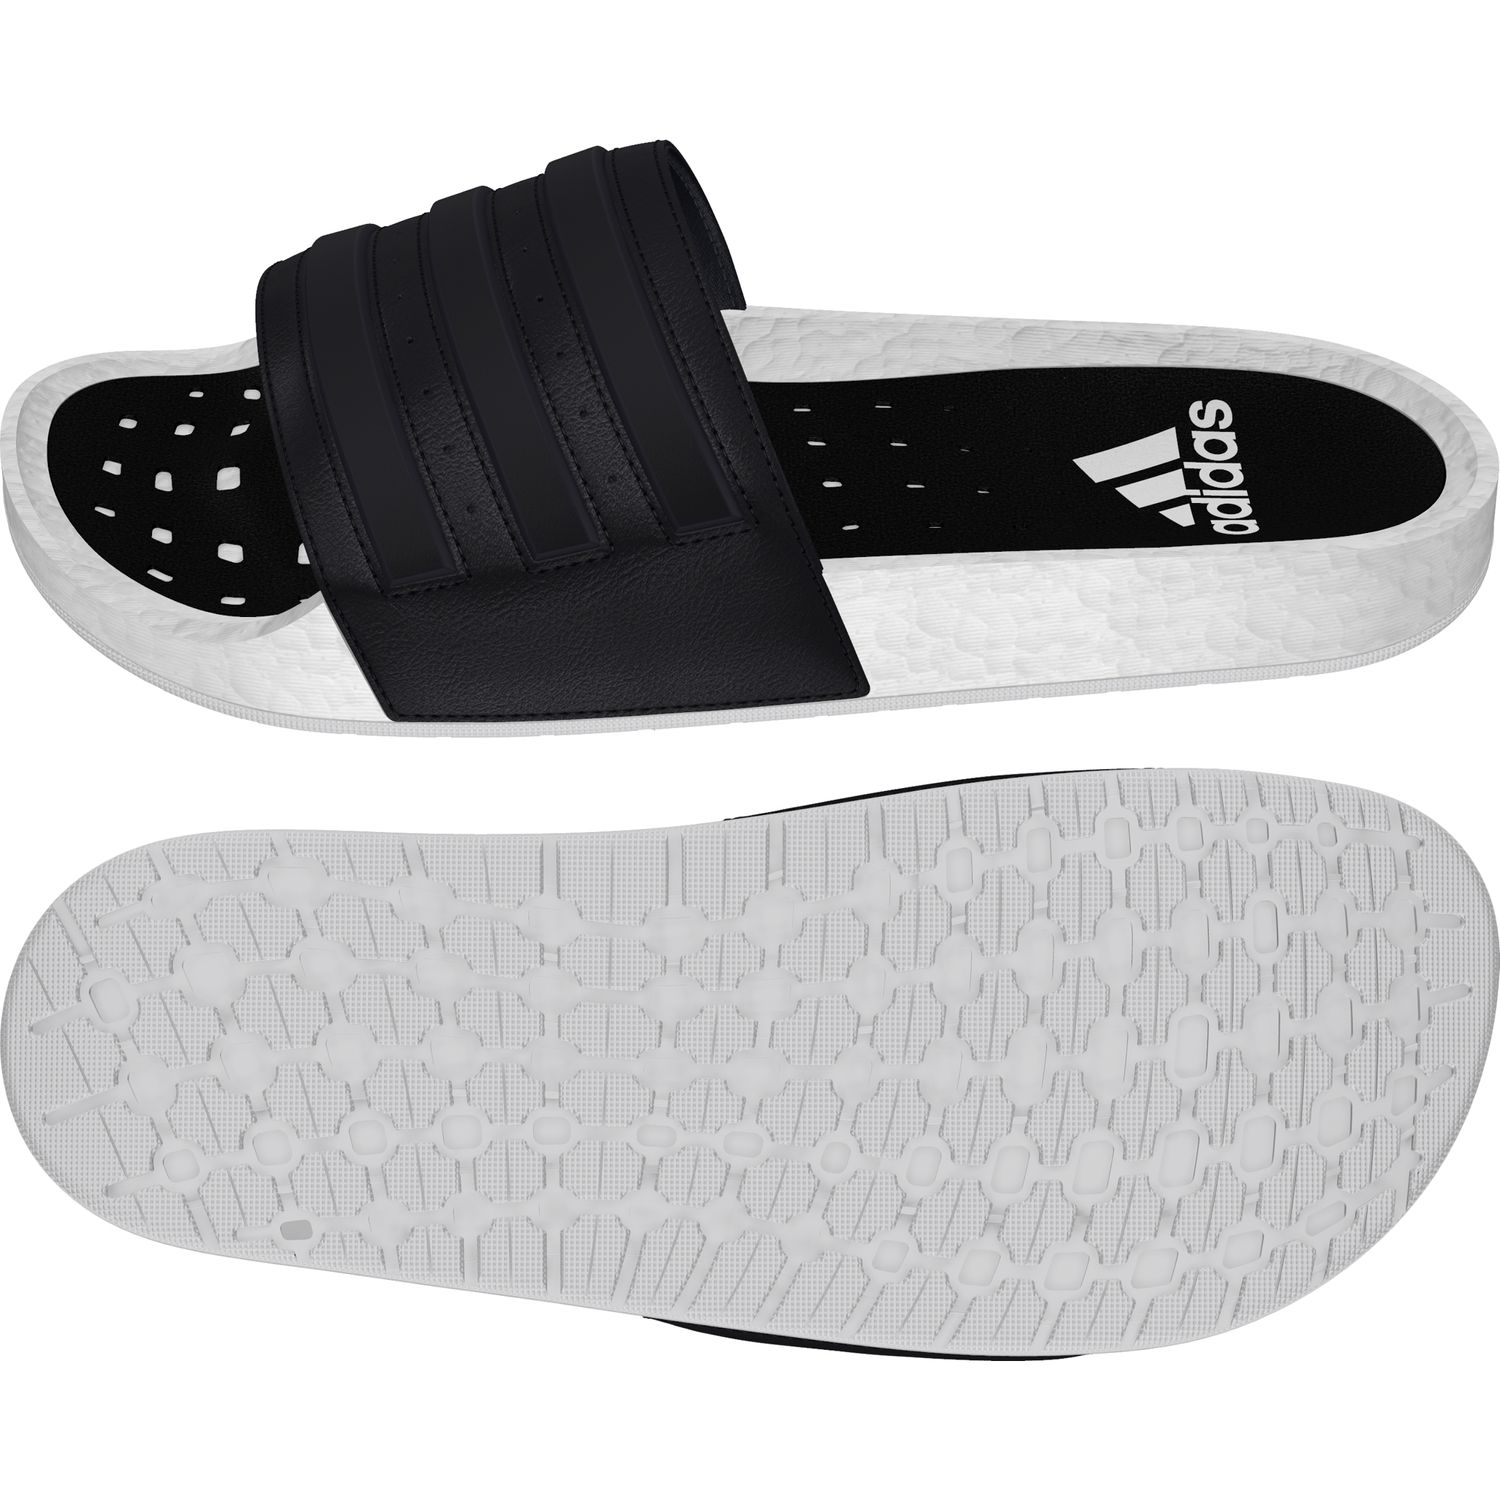 Civilizar Caucho Sumergir  Adidas Adilette Boost Mules Slides EG1910 Shower Slippers with ...